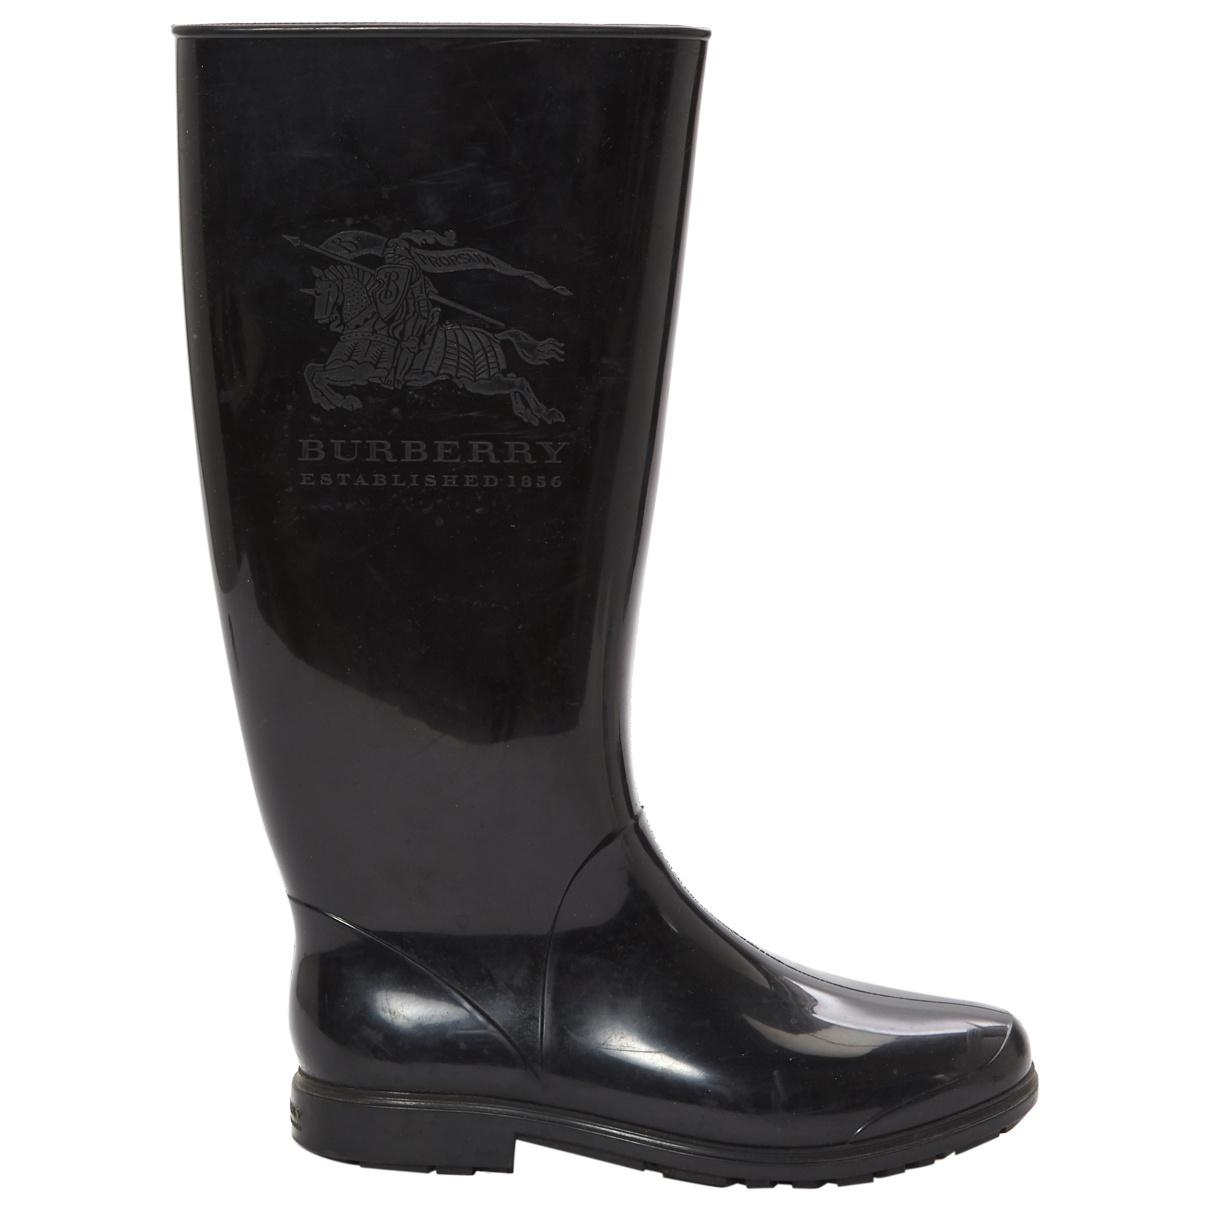 Pre-owned - Wellington boots Burberry xT7iym